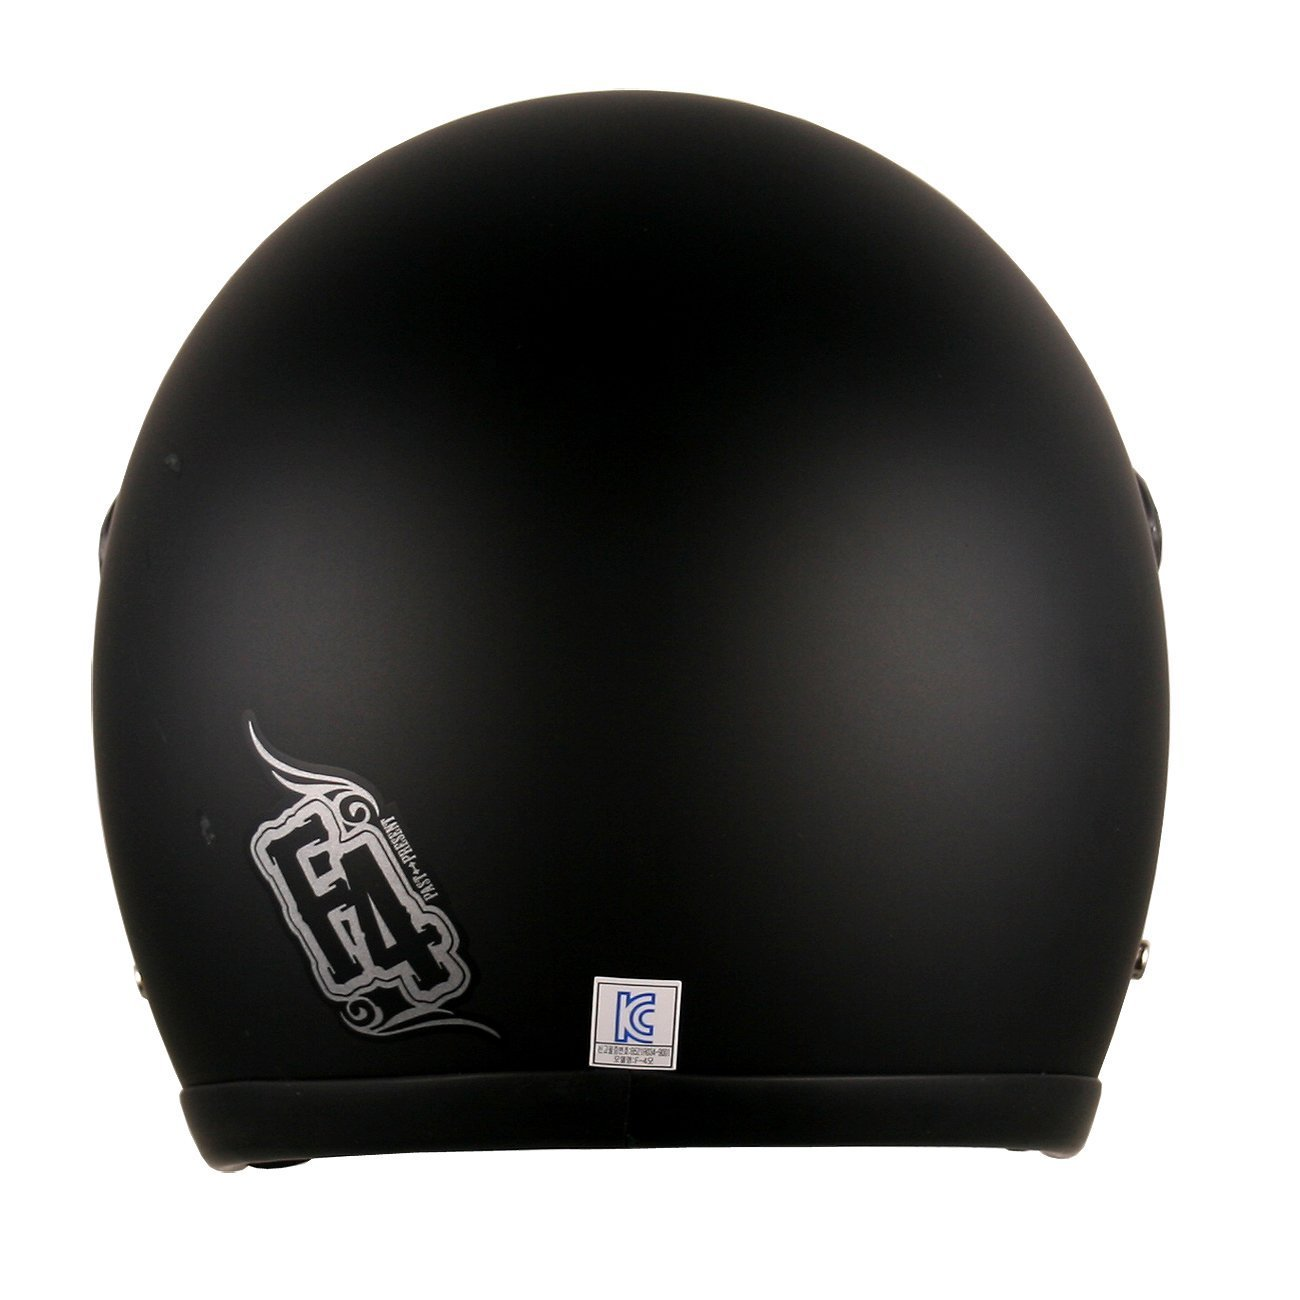 Amazon.com: (F4 Jet, incluye visor protector) Casco ...